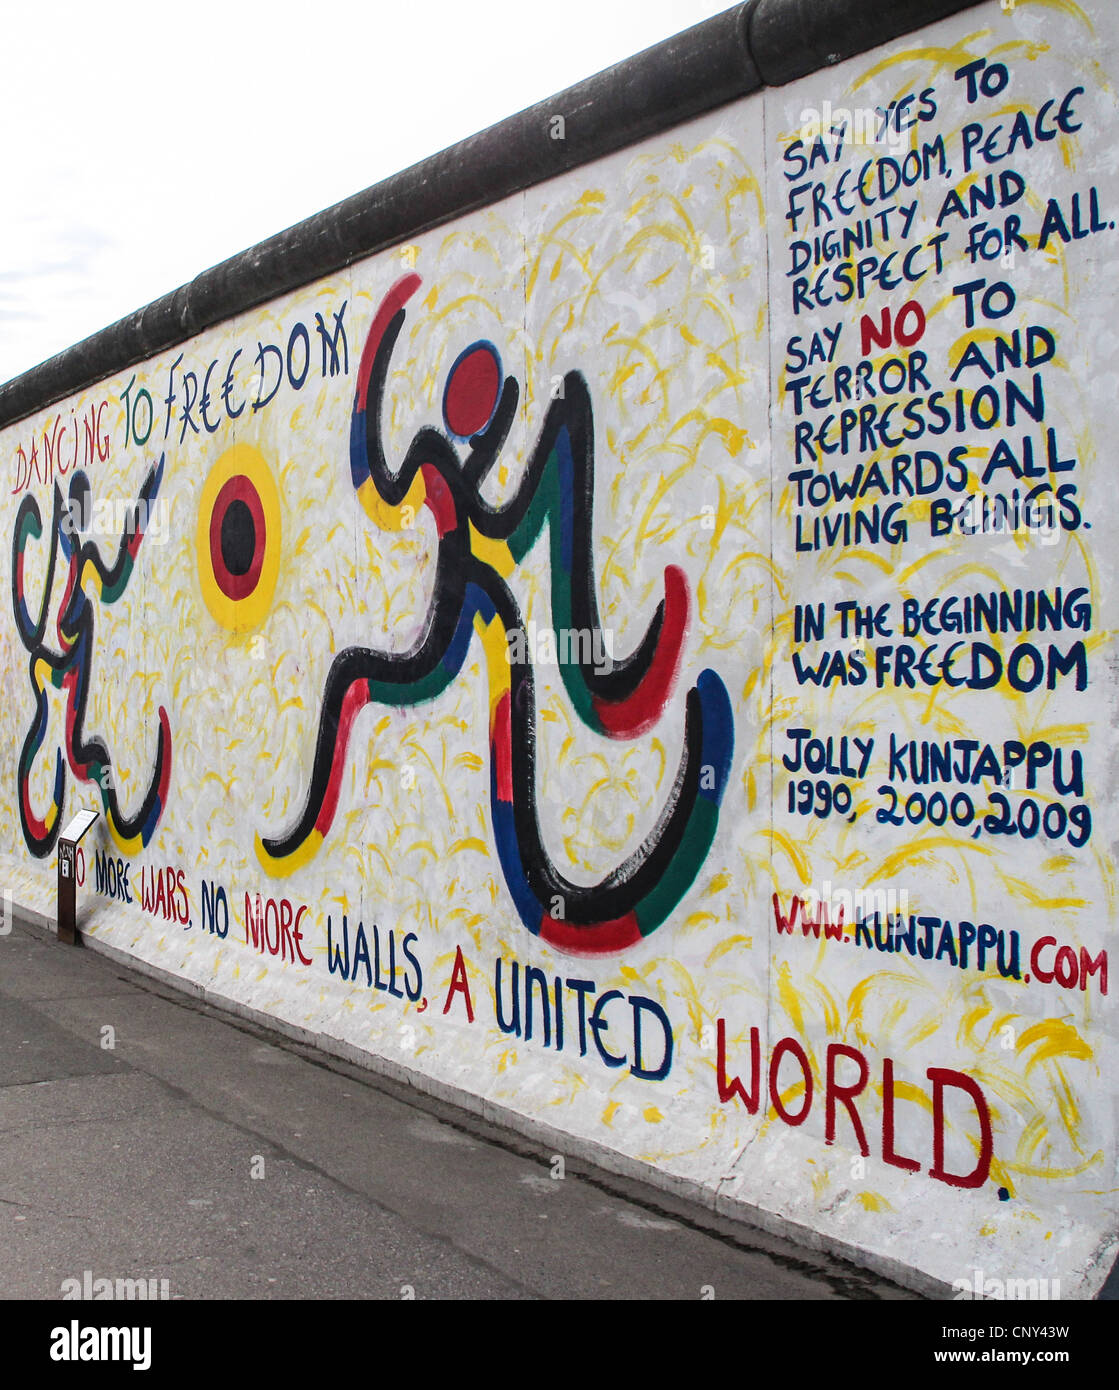 The East Side Gallery's murales are the street-art in Berlin, painted on their own famous wall - Stock Image